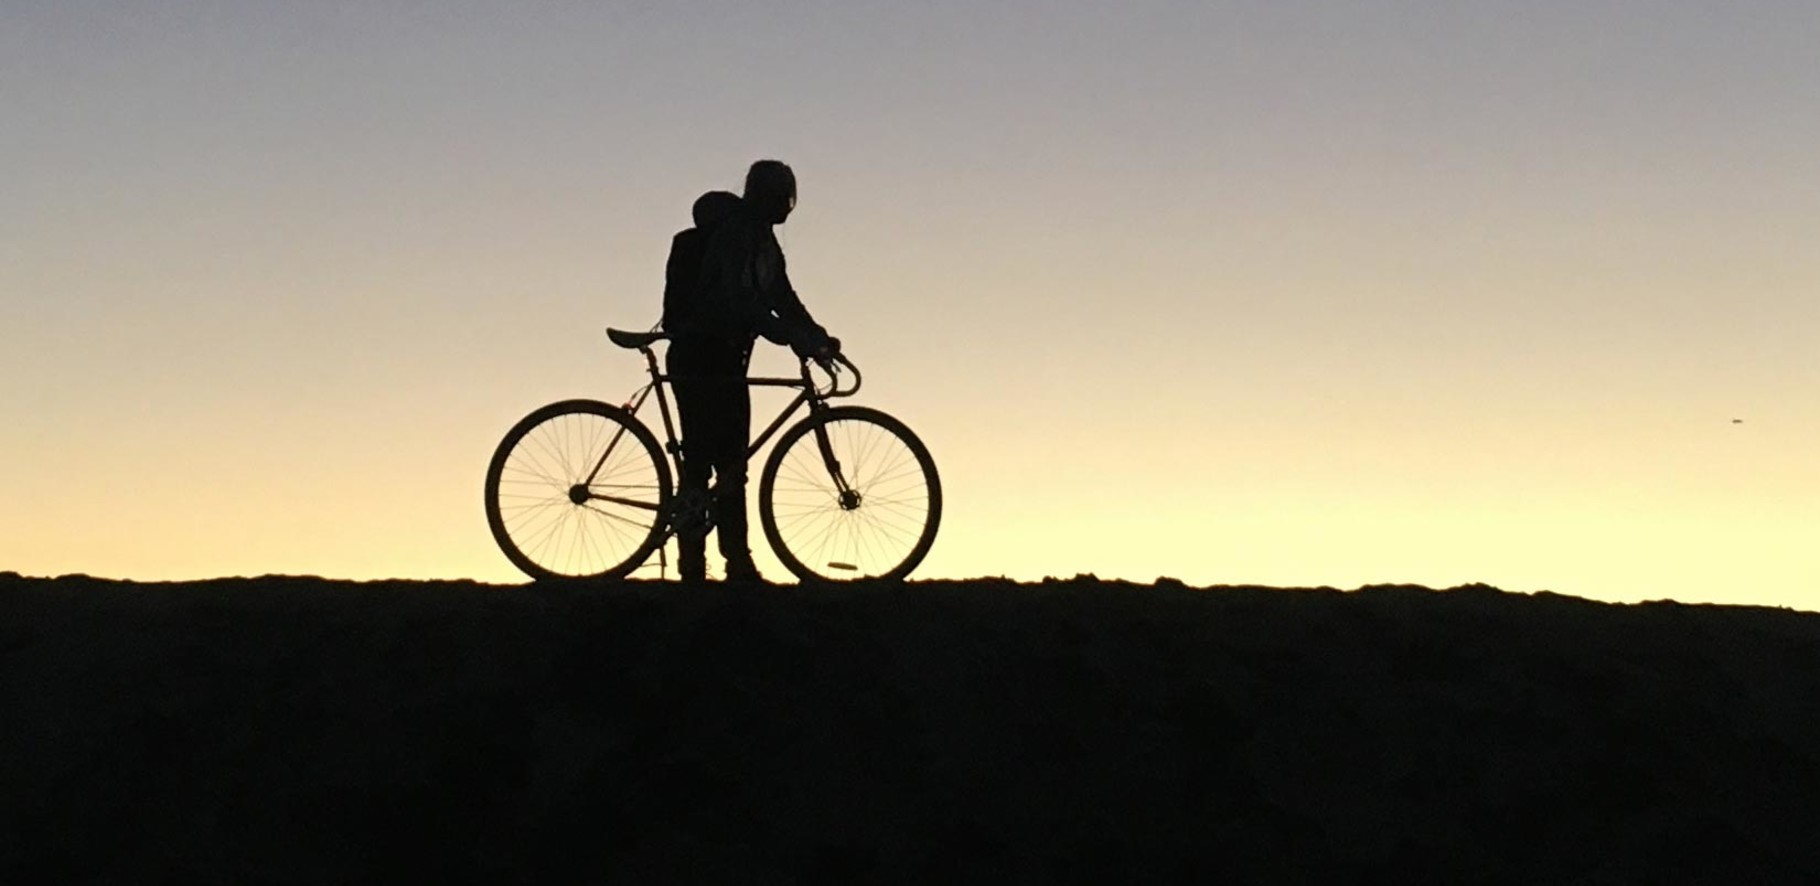 Black silhouette of a man and his bicycle against an evening sunset backdrop